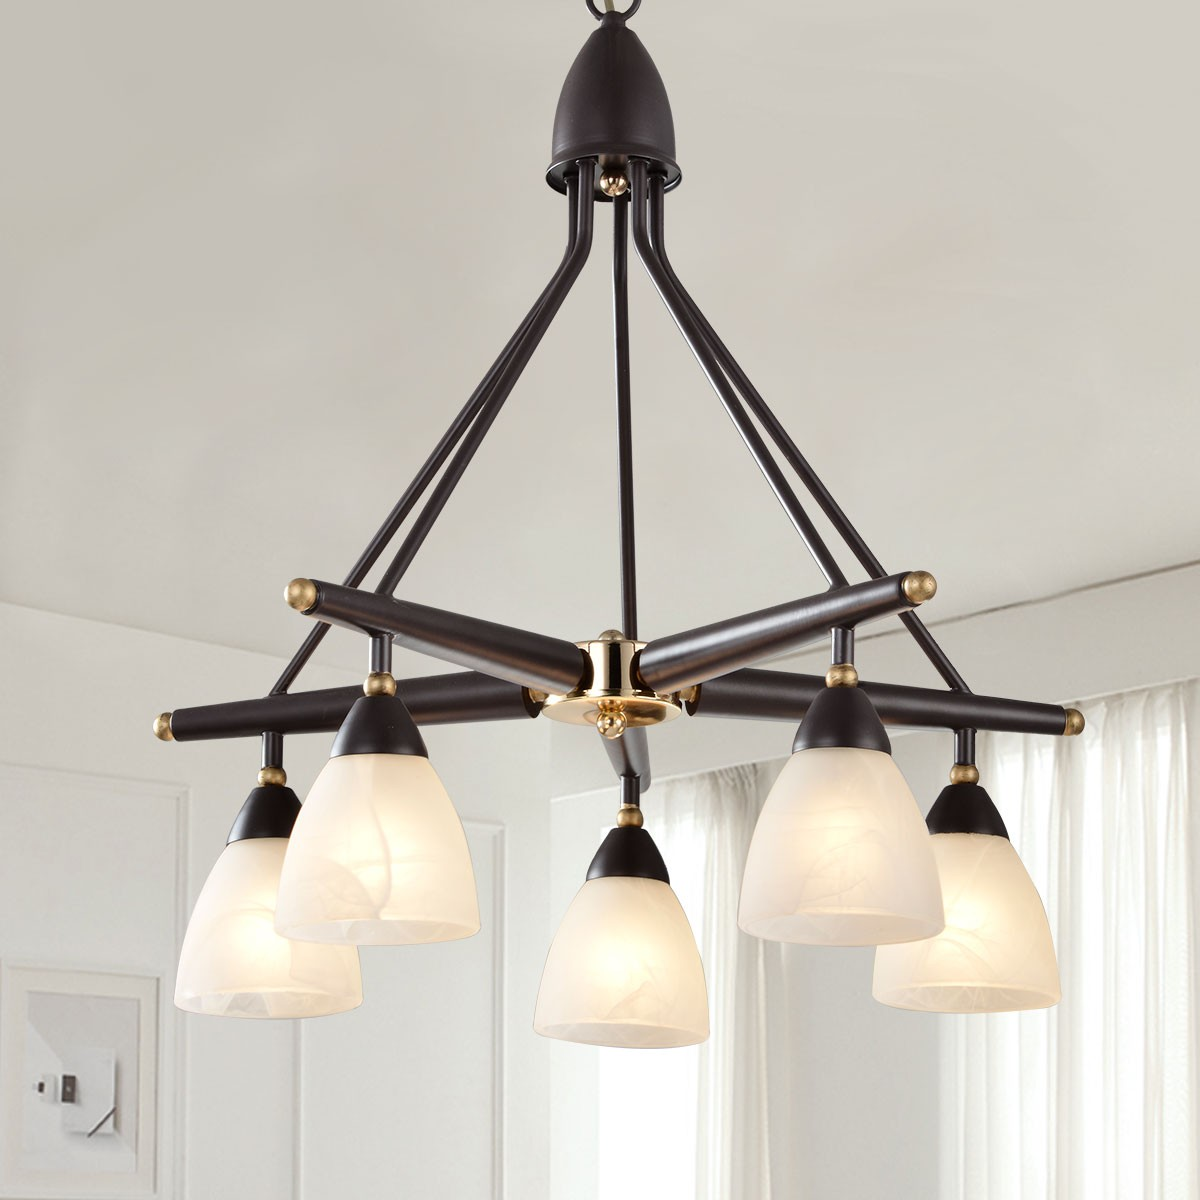 5-Light Brown Iron Modern Chandelier with Glass Shades (HKP31289-5)